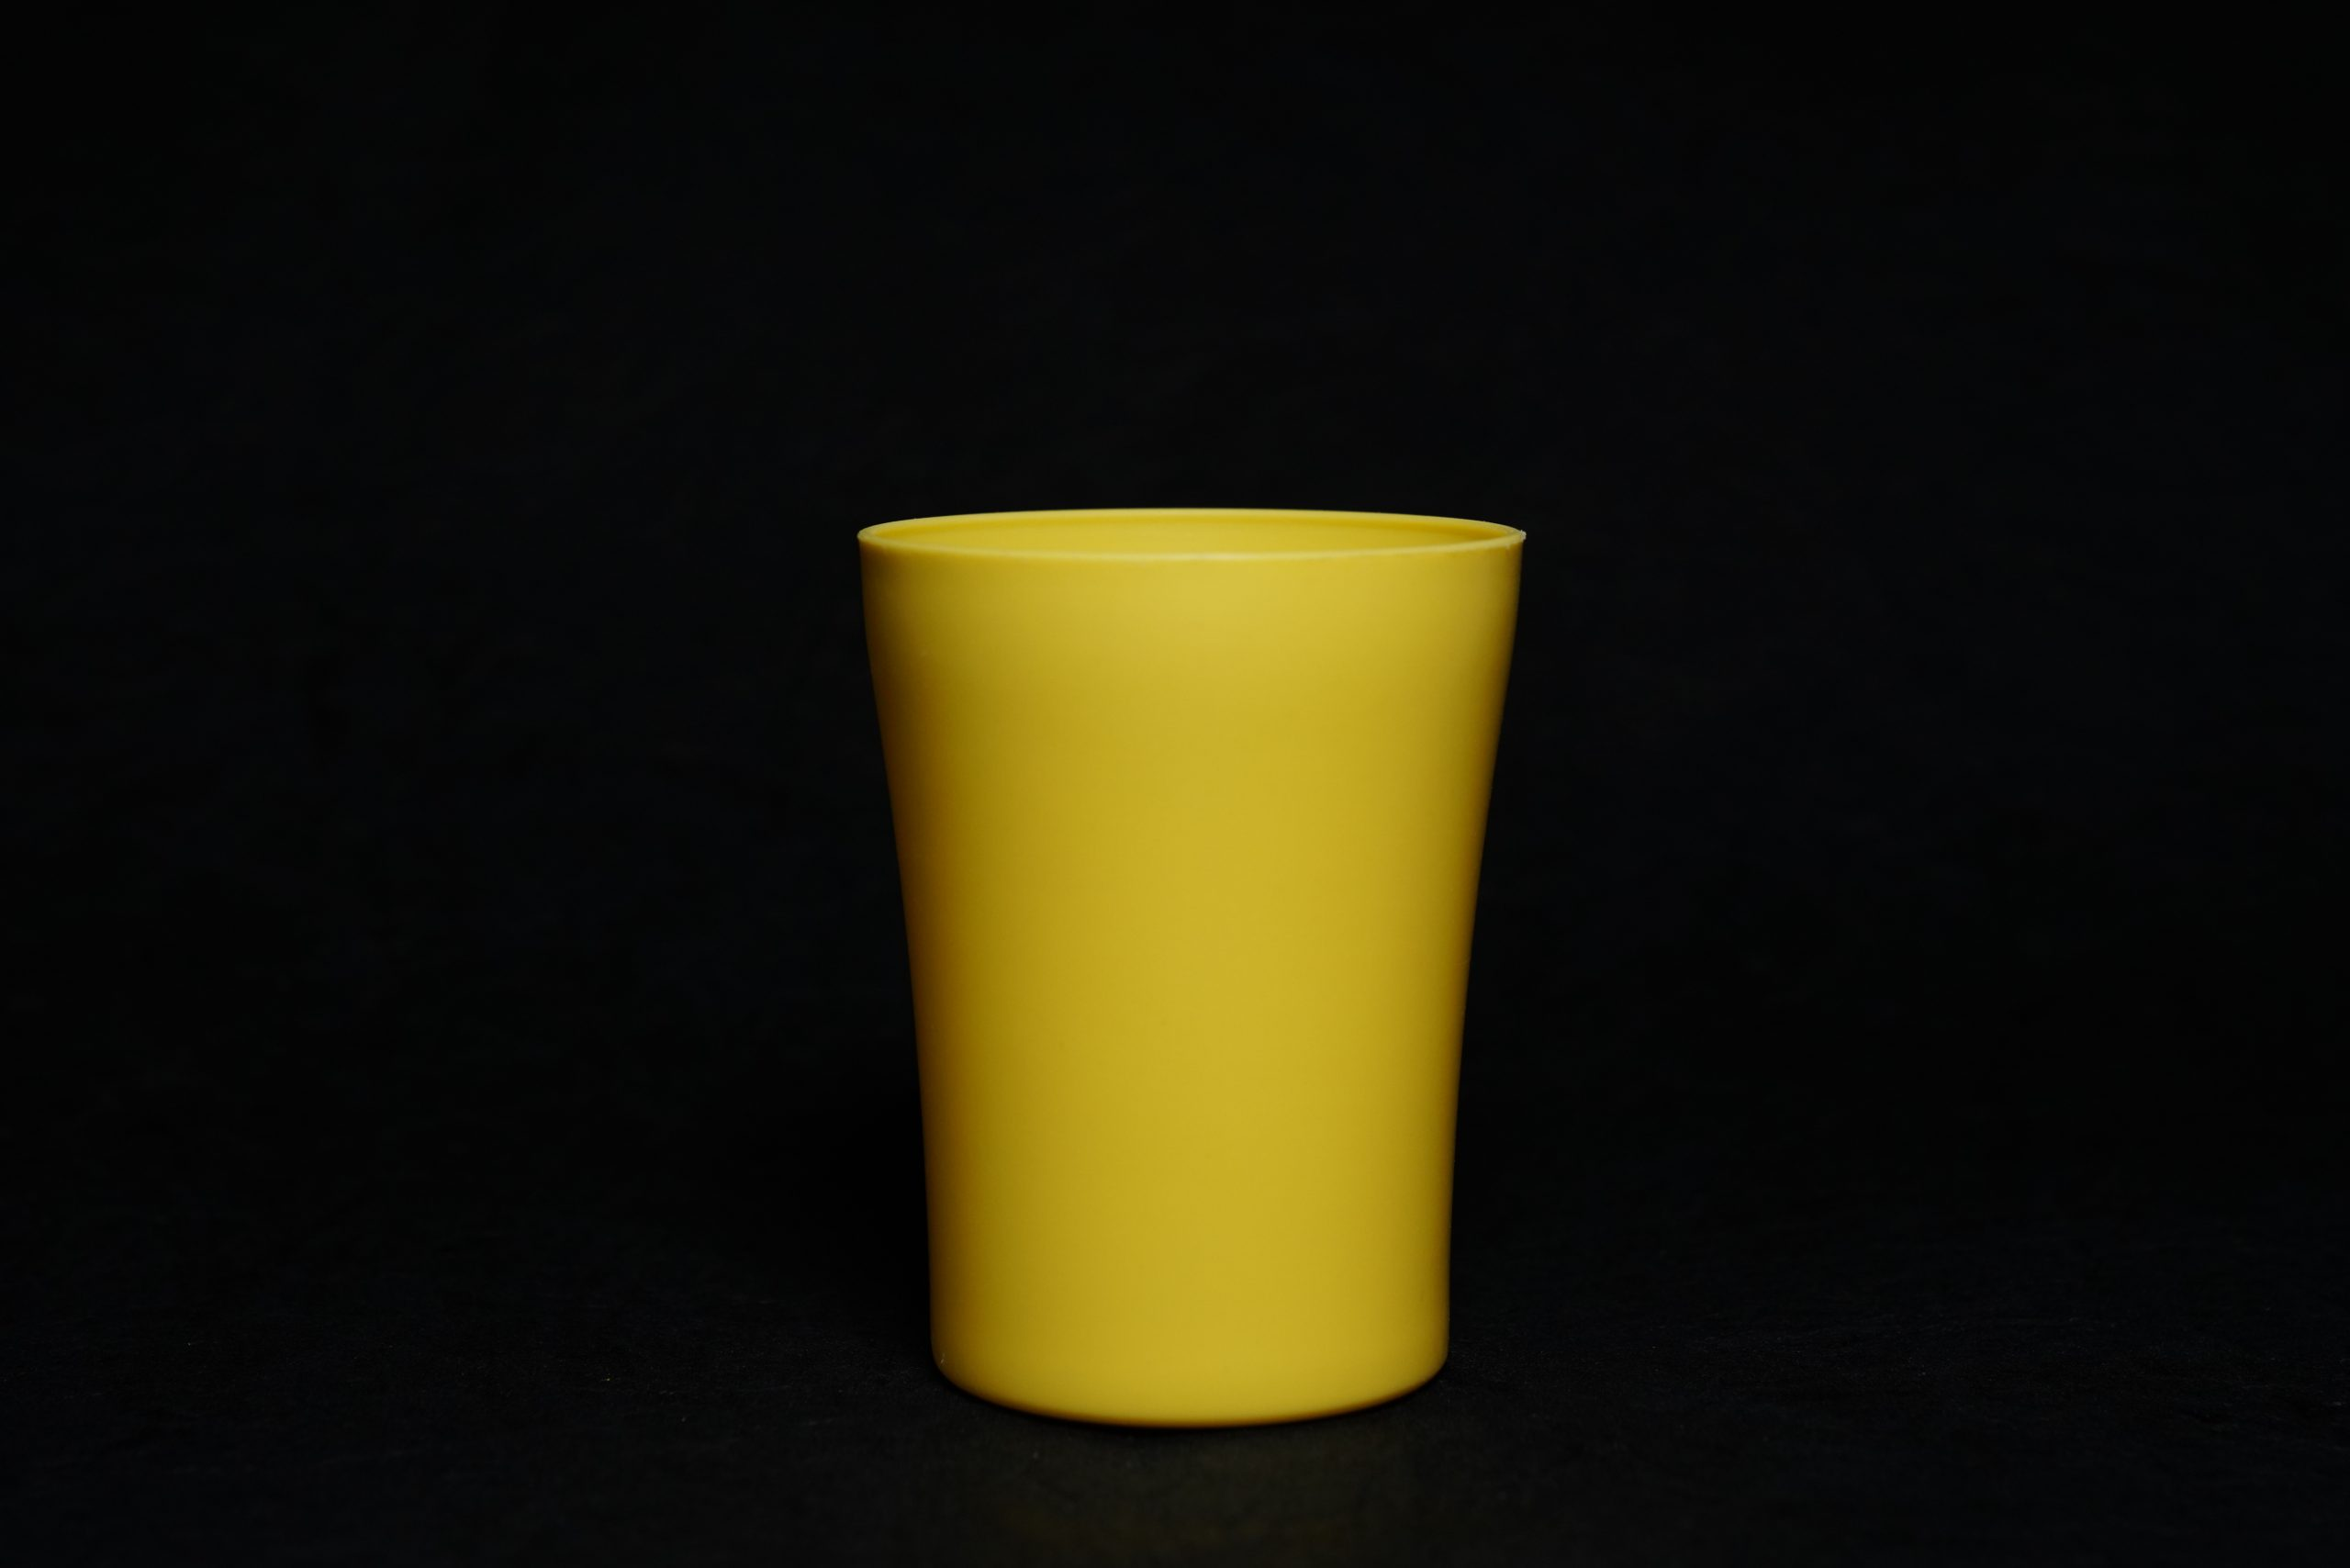 A yellow glass with black background